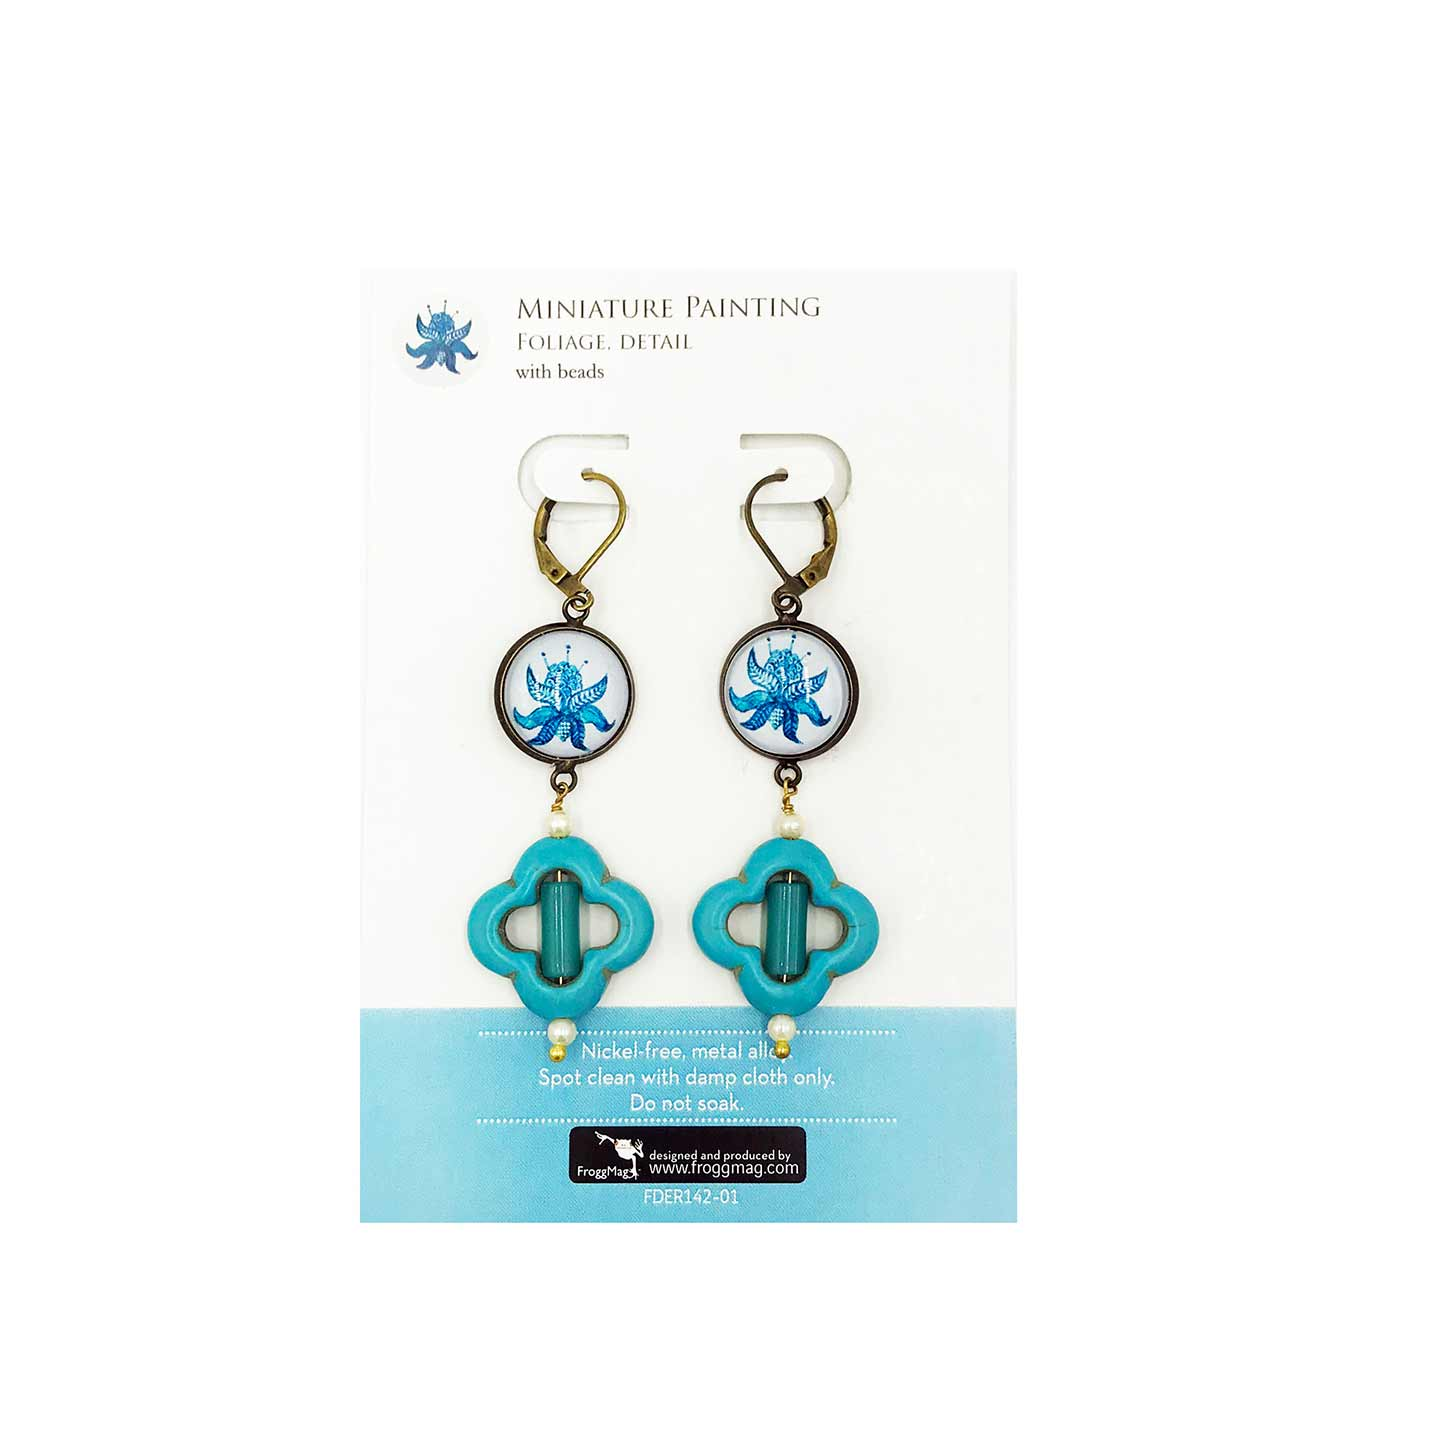 Earrings - Mughal Paintings with beads